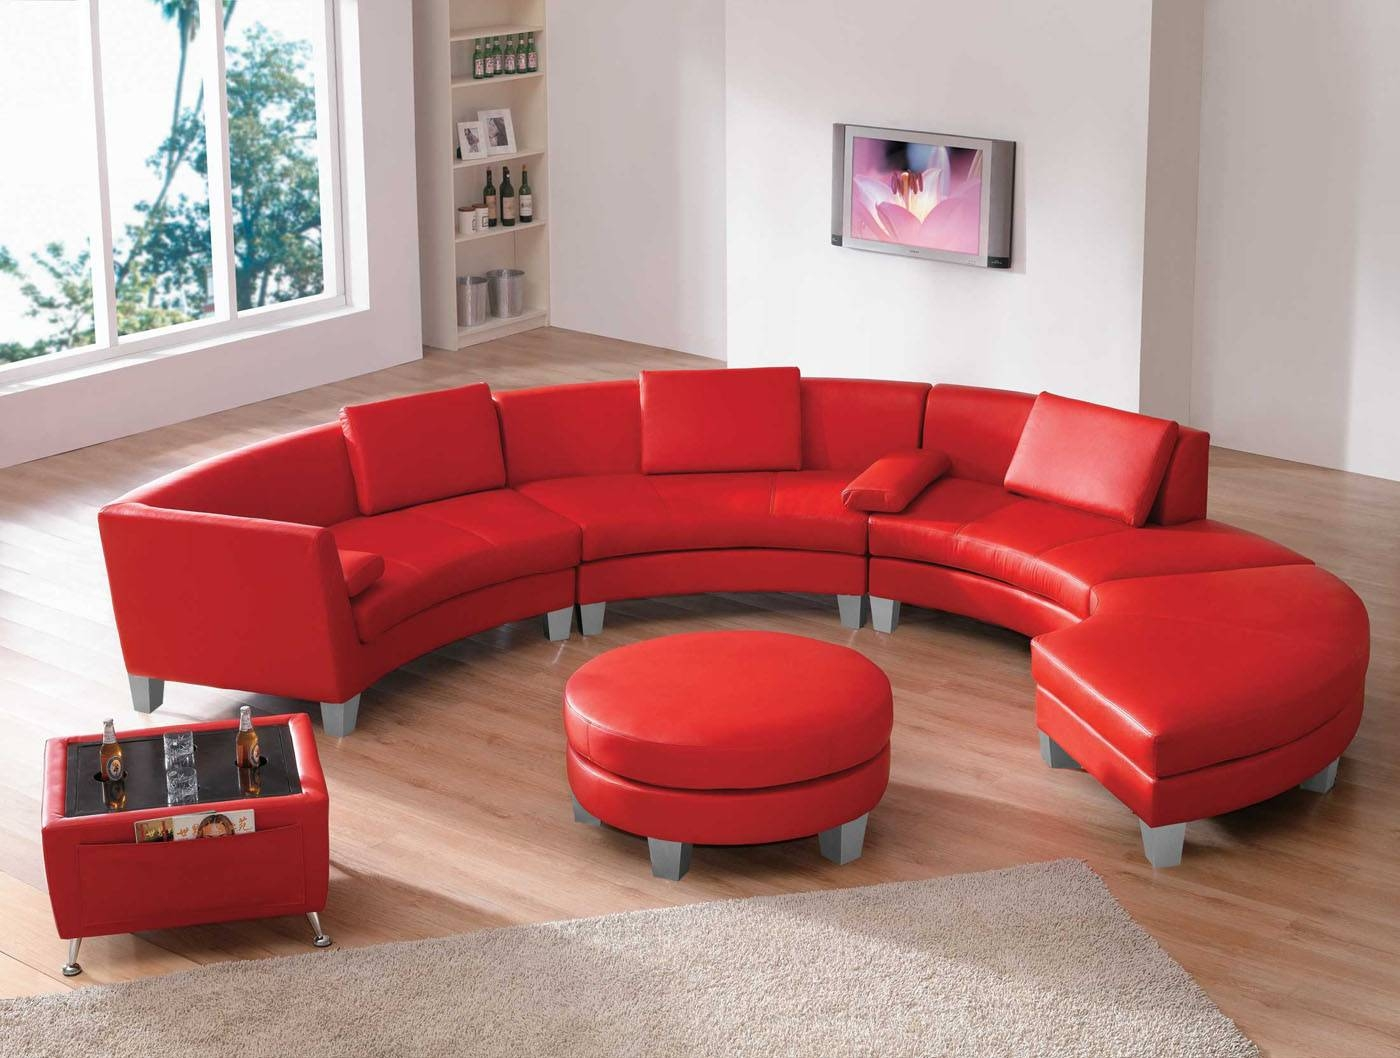 Enchanting Cheap Red Sectional Sofa 40 In Down Filled Sectional inside Down Filled Sectional Sofas (Image 8 of 30)